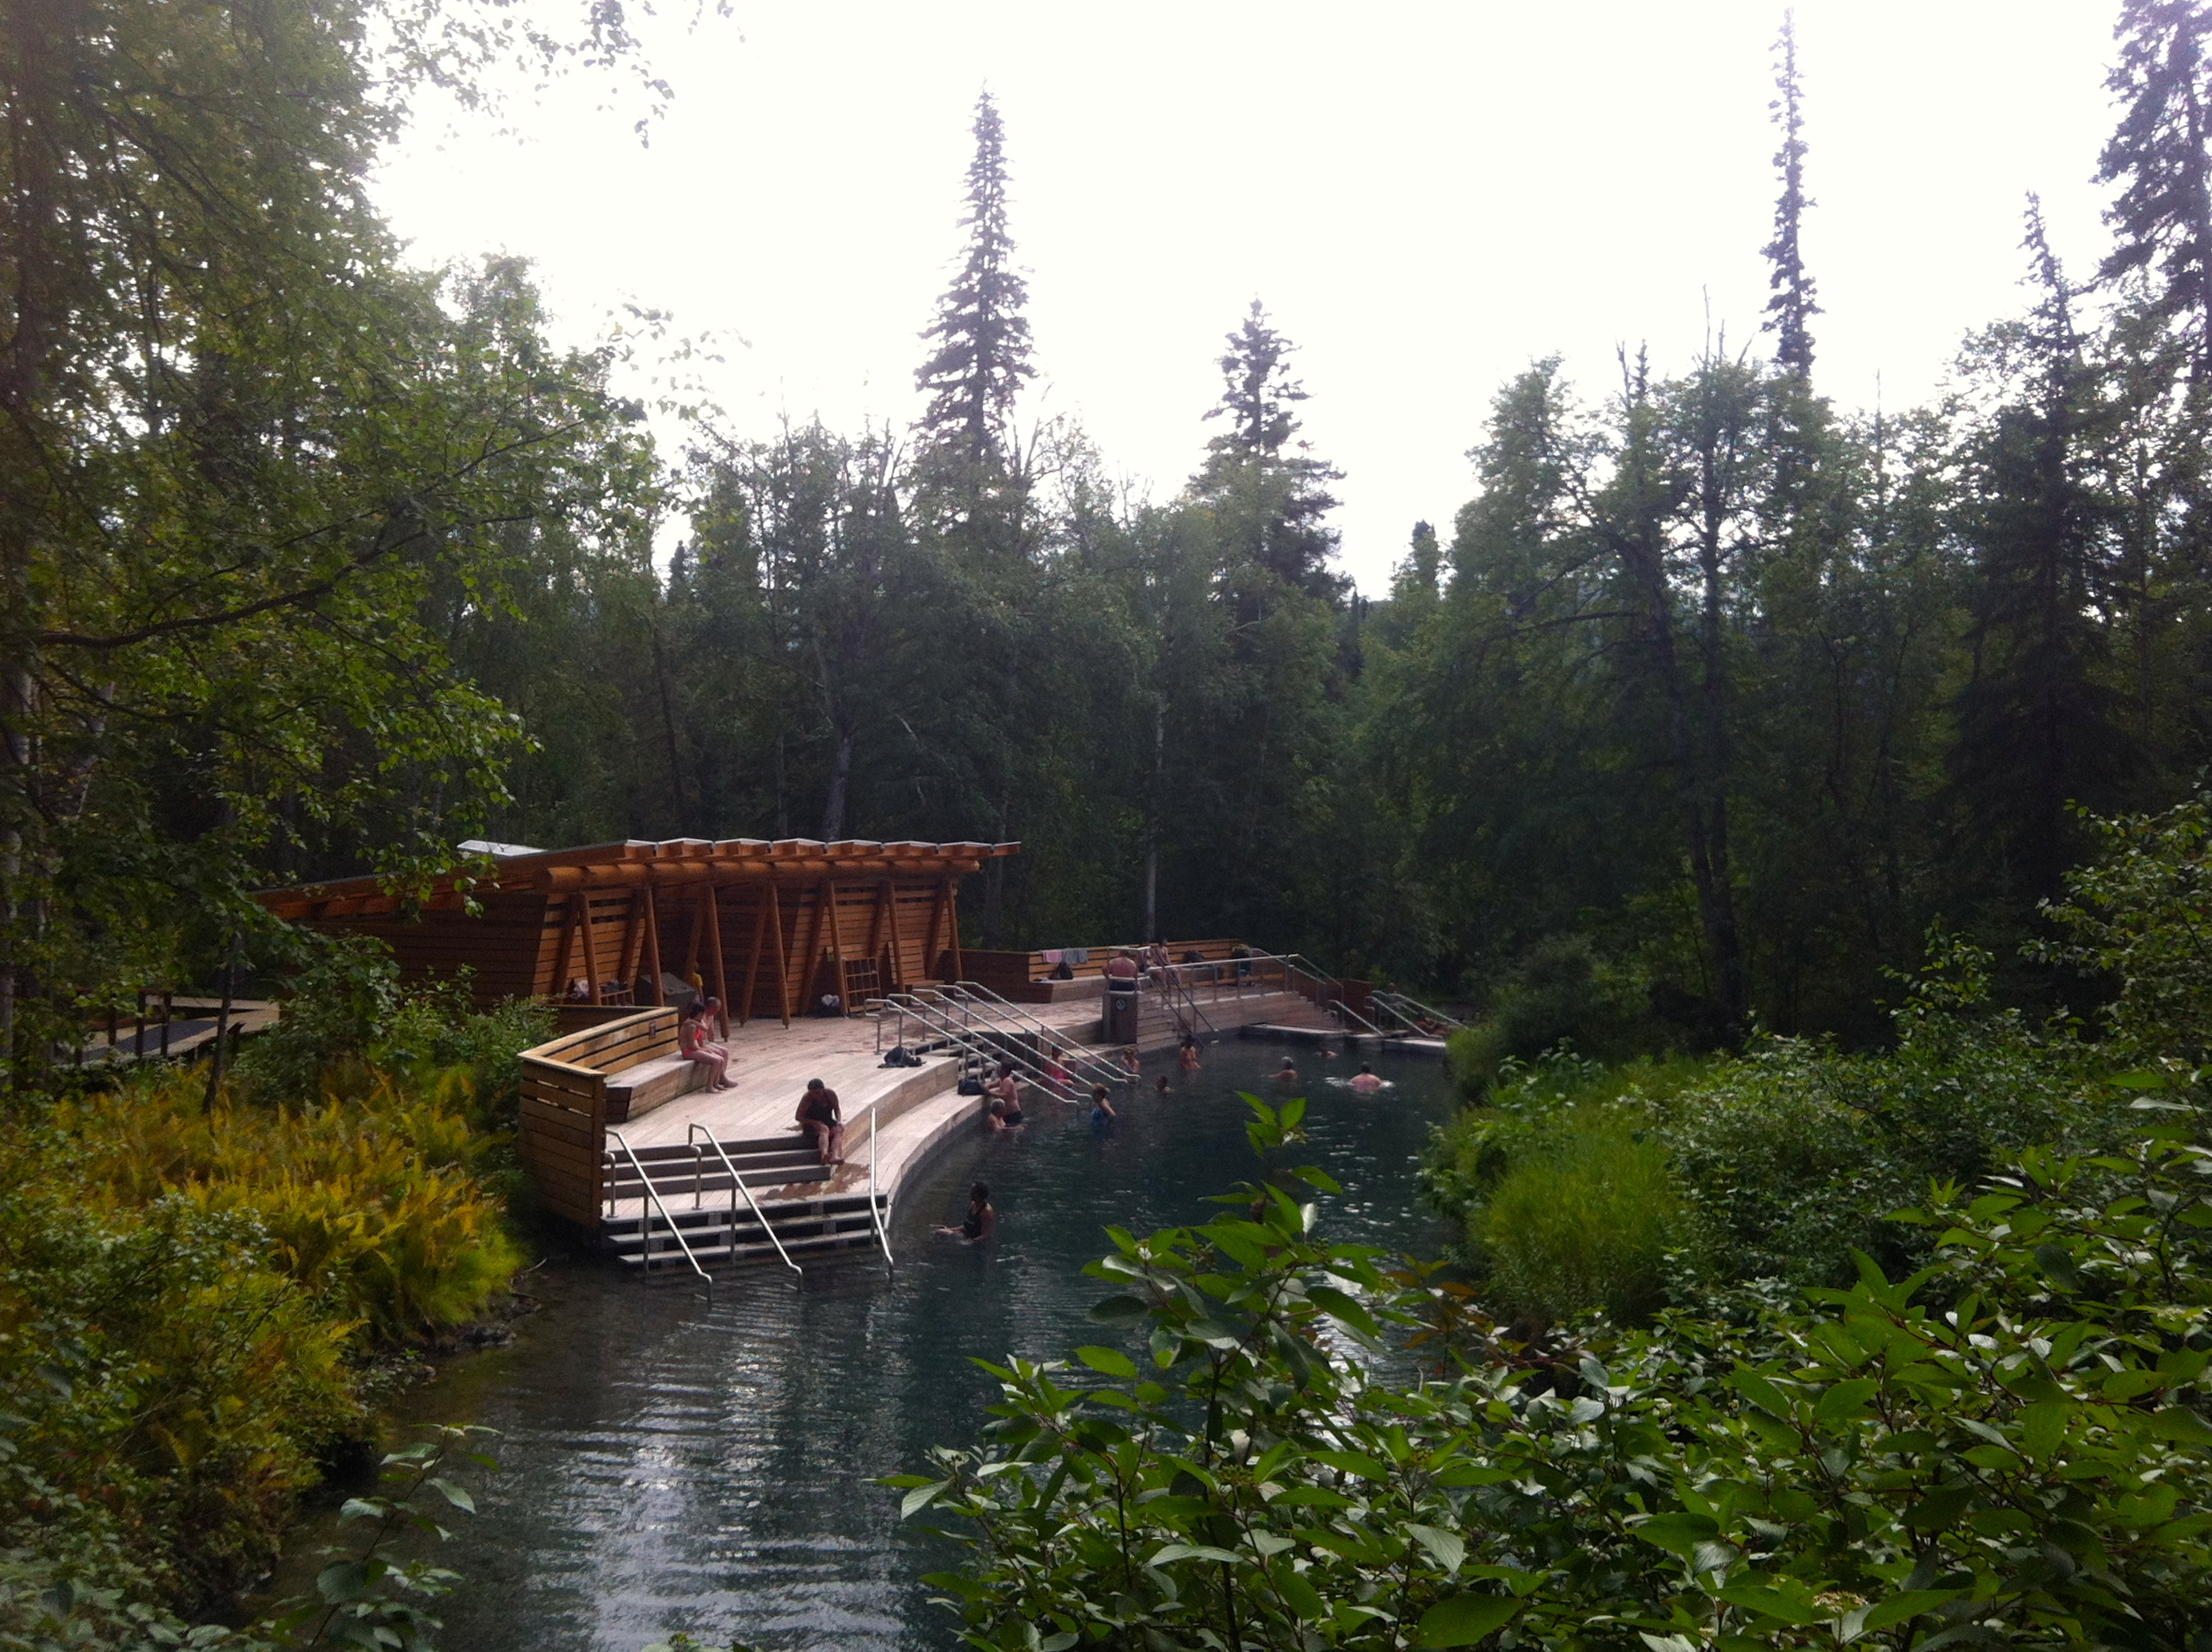 These hot springs were pretty fancy andfluctuatedin temperature from 1st degree burns down to tepid!